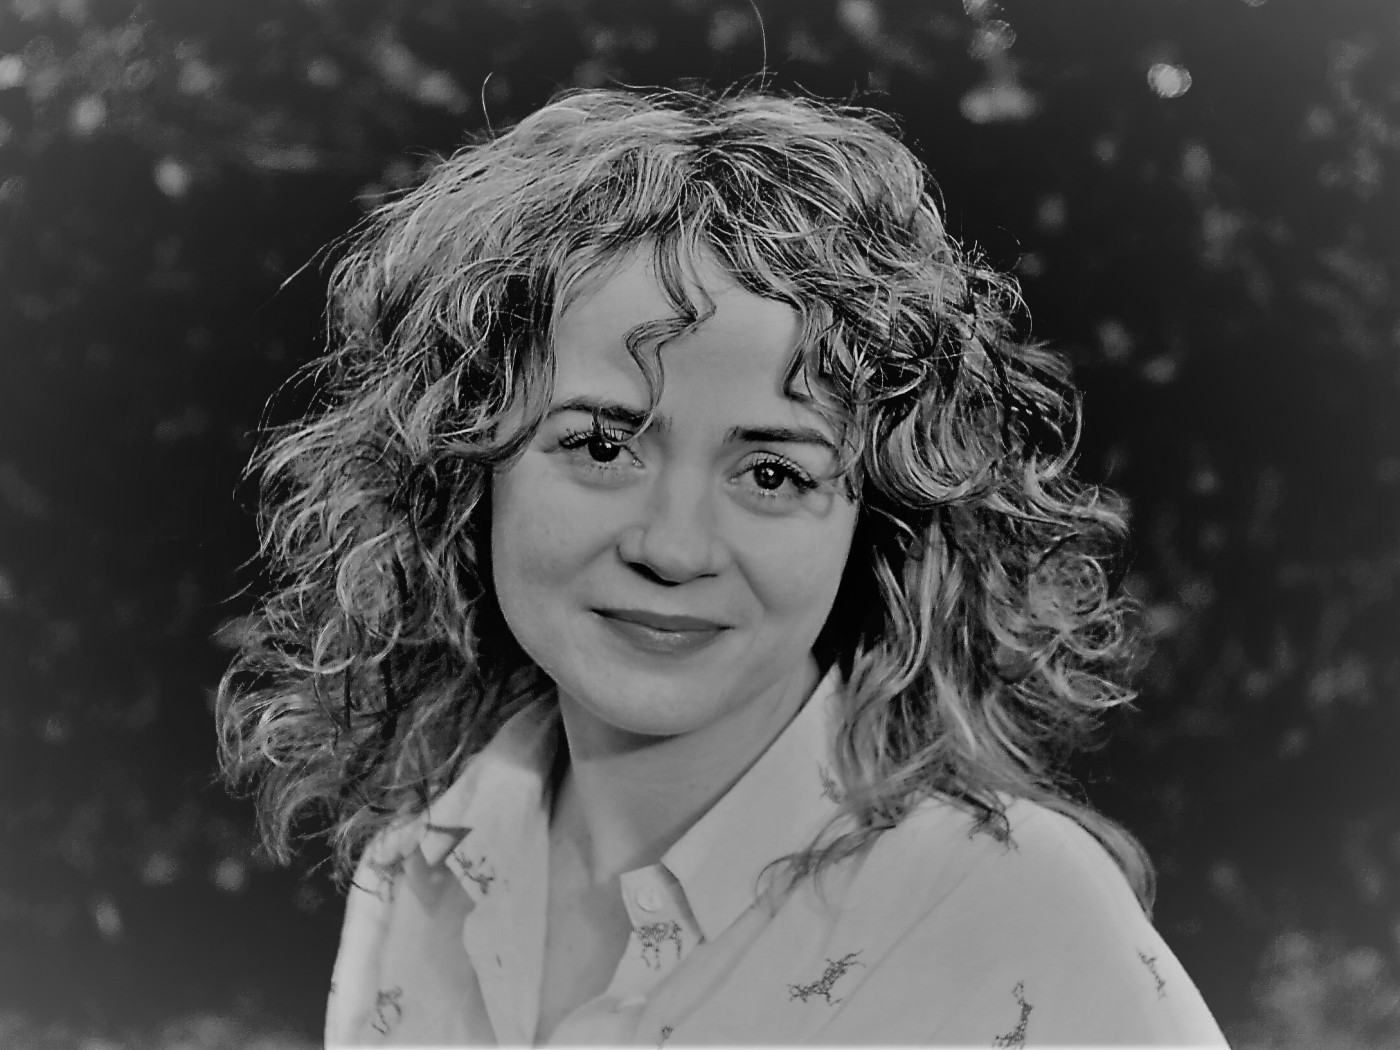 Greyscale. Maureen O'Connell, a white woman with shoulder-length wavy hair, smiling slightly at the camera.